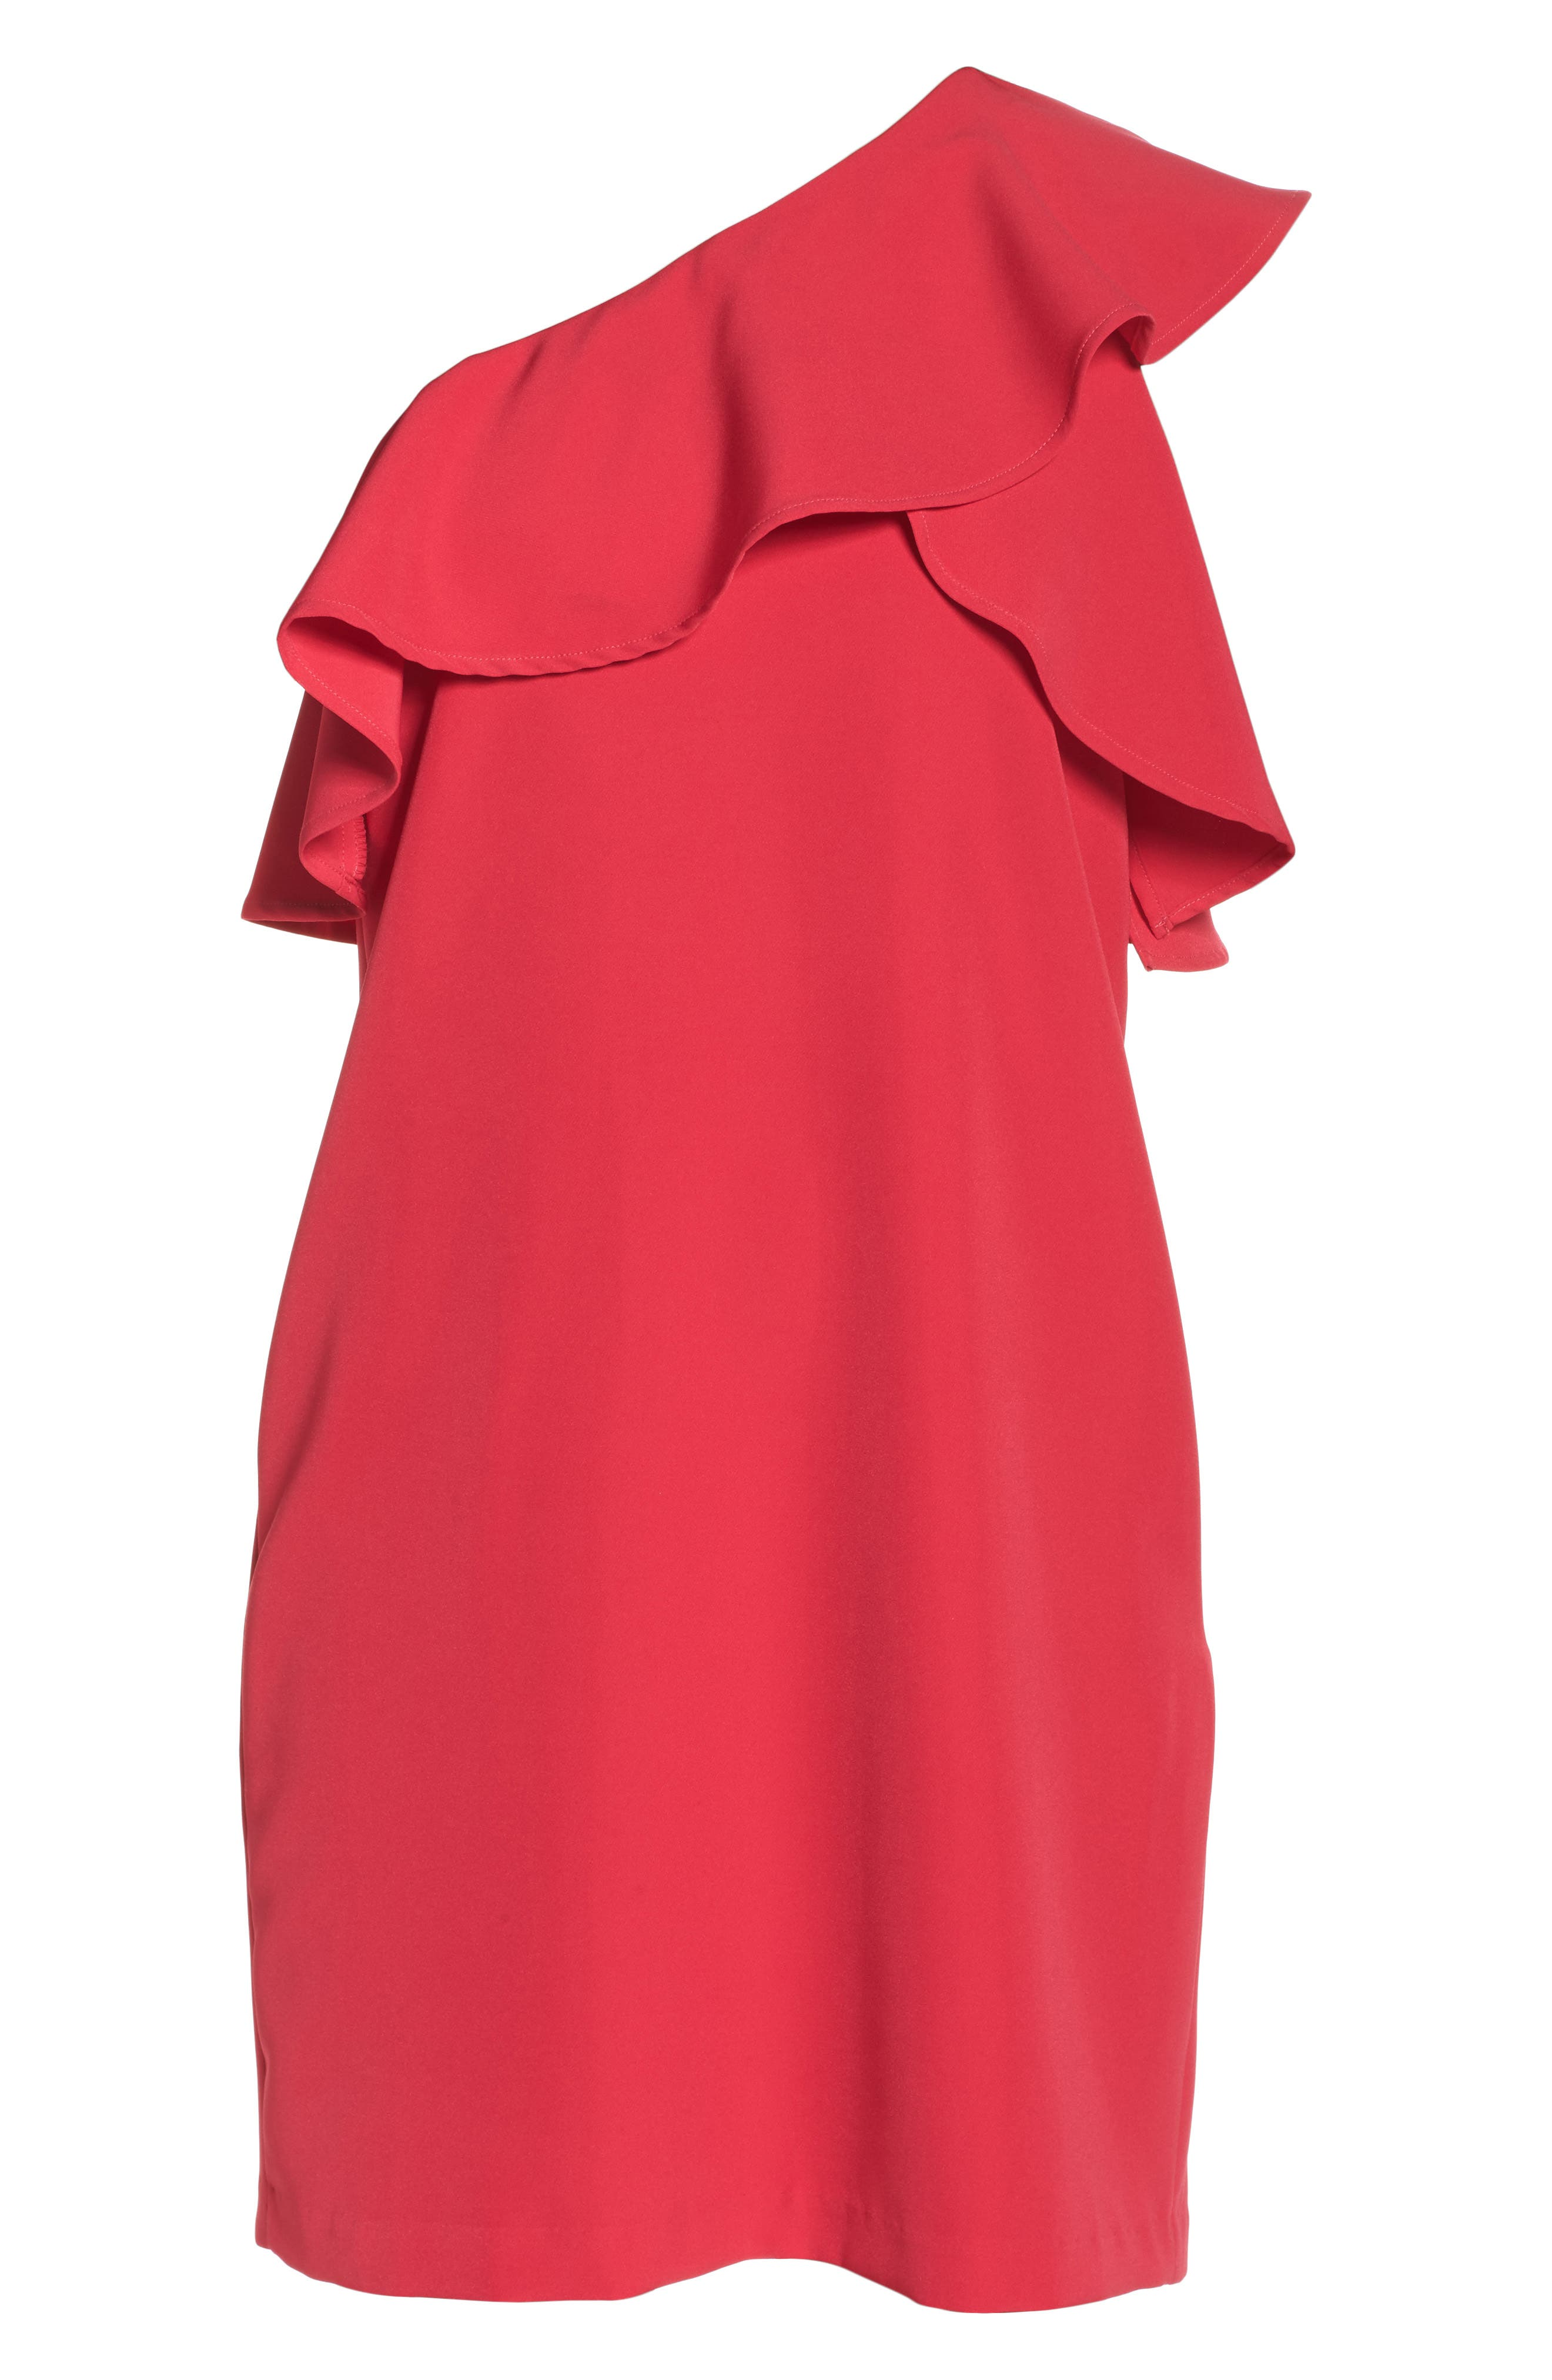 Ruffle One-Shoulder Dress,                             Alternate thumbnail 6, color,                             657